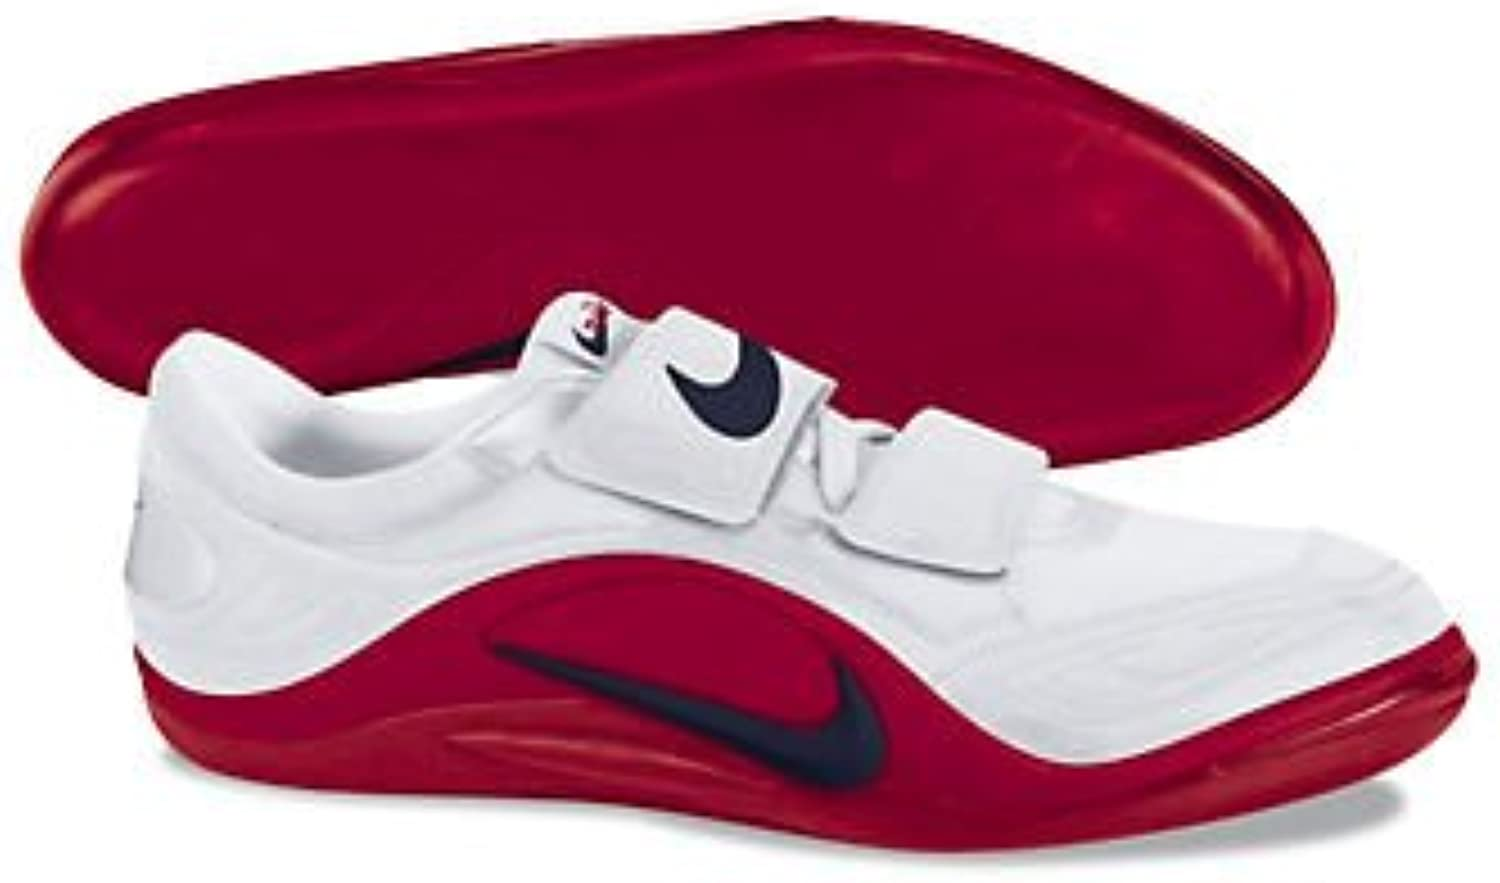 NIKE ZOOM redATIONAL IV (ADULT UNISEX) - 11.5